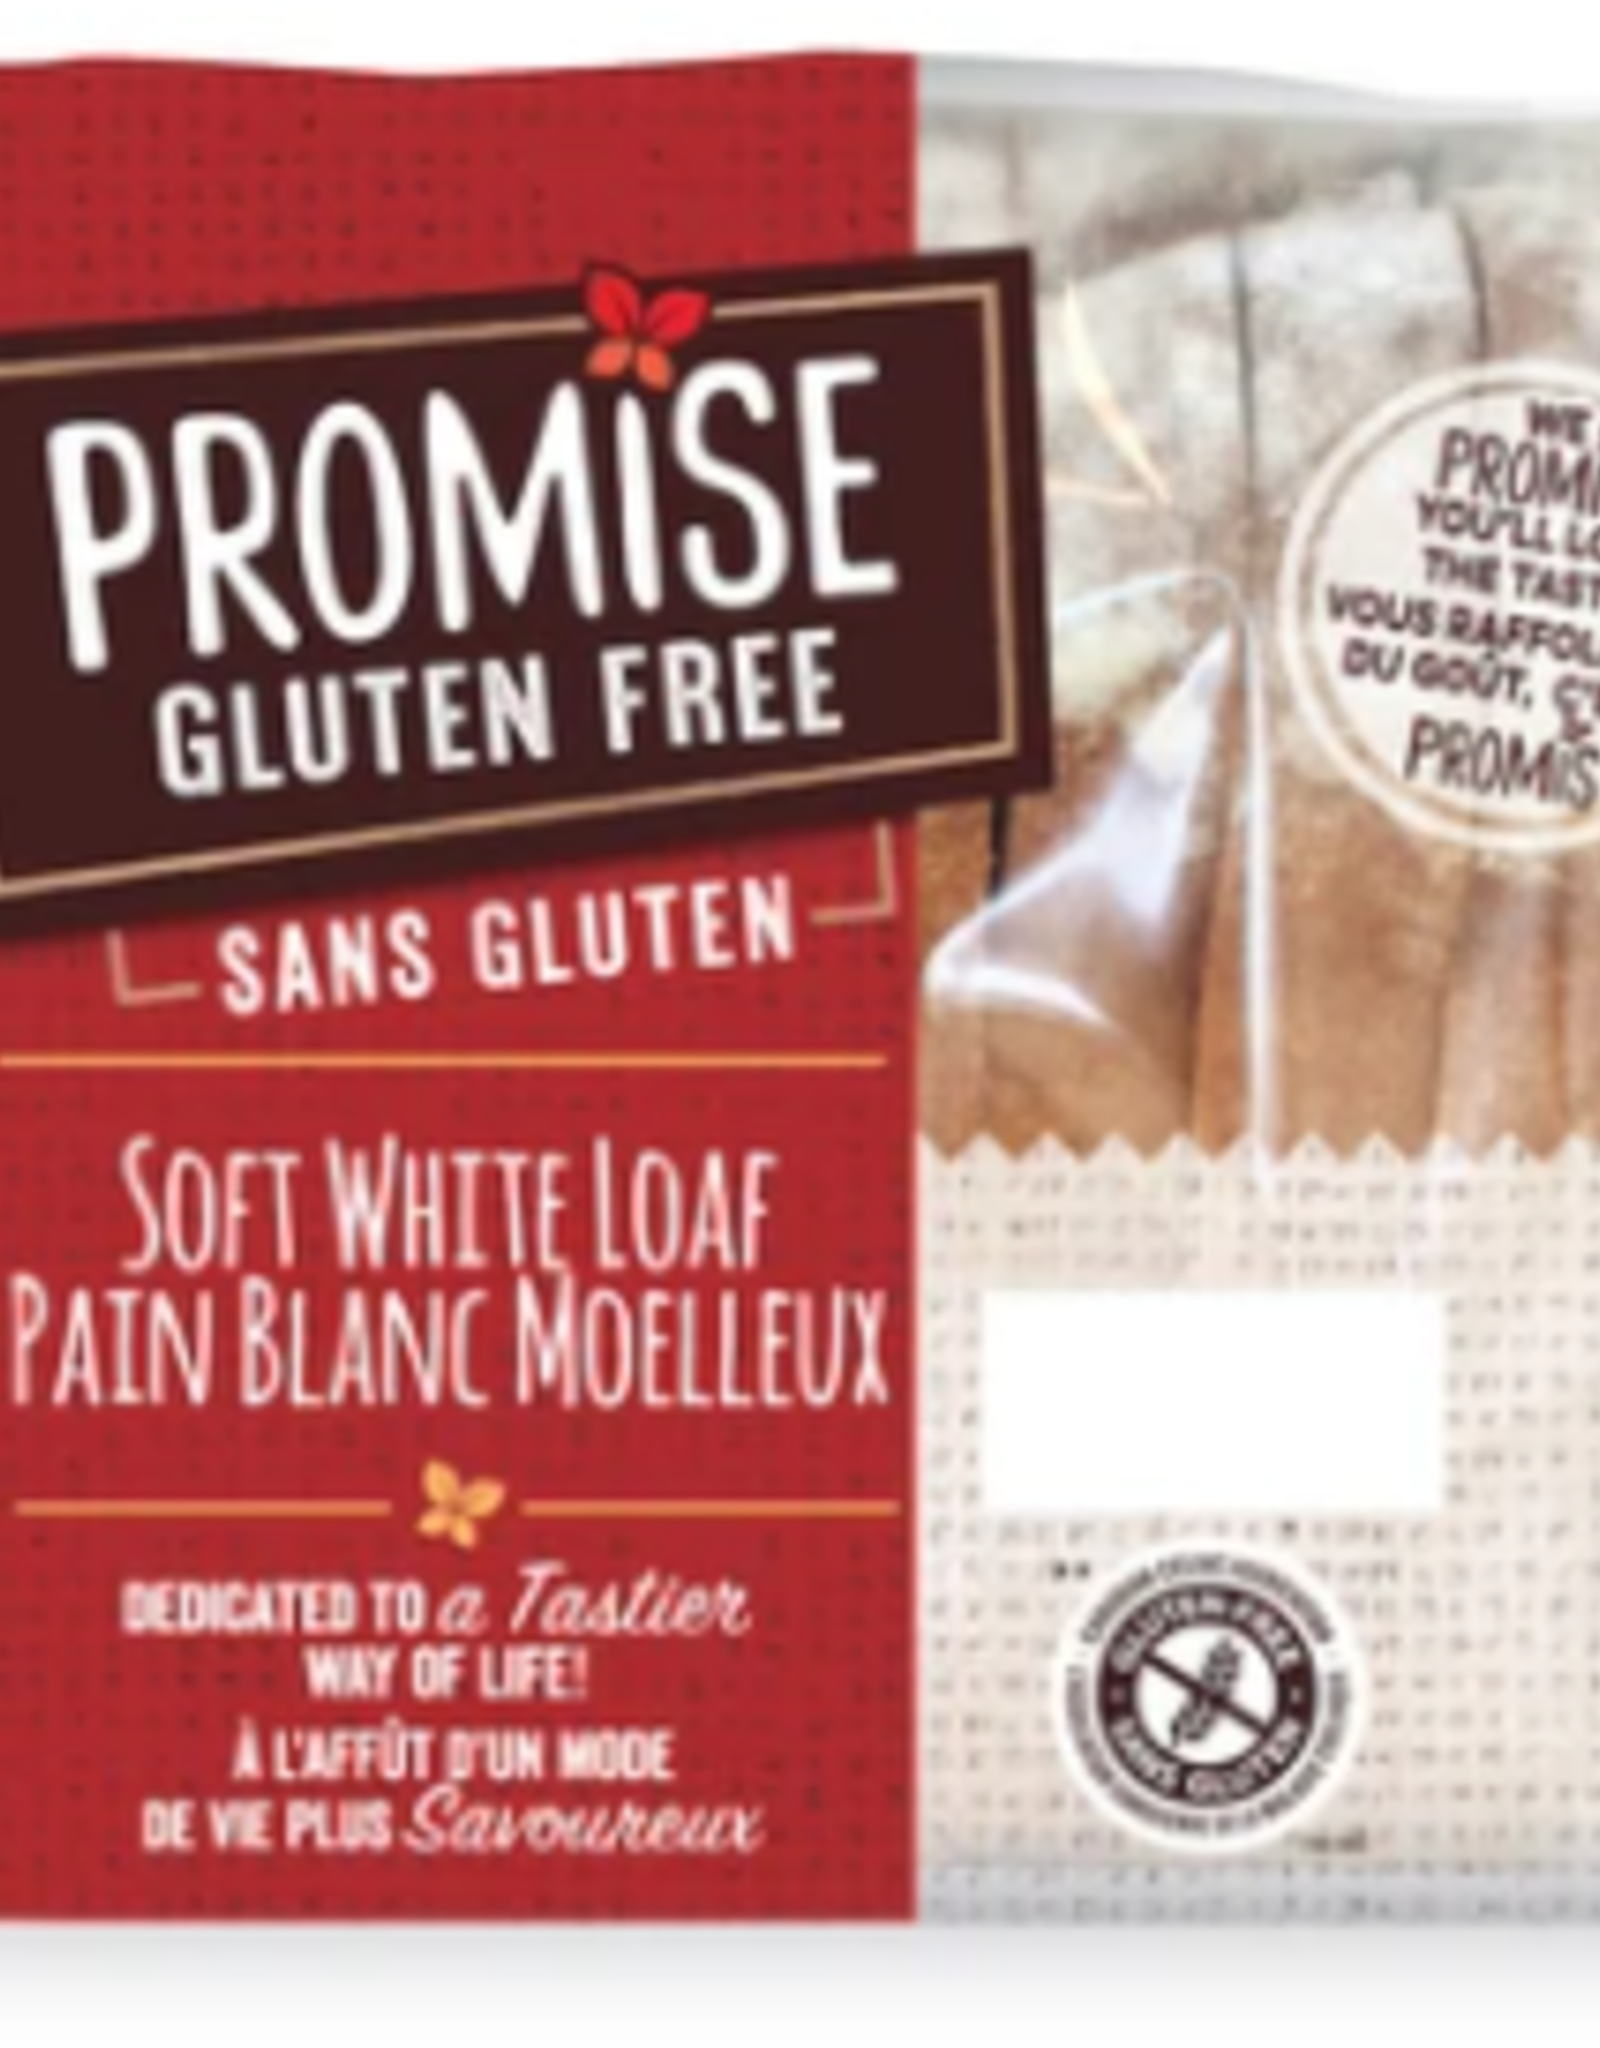 Promise Gluten Free Promise Gluten Free - Soft White Loaf